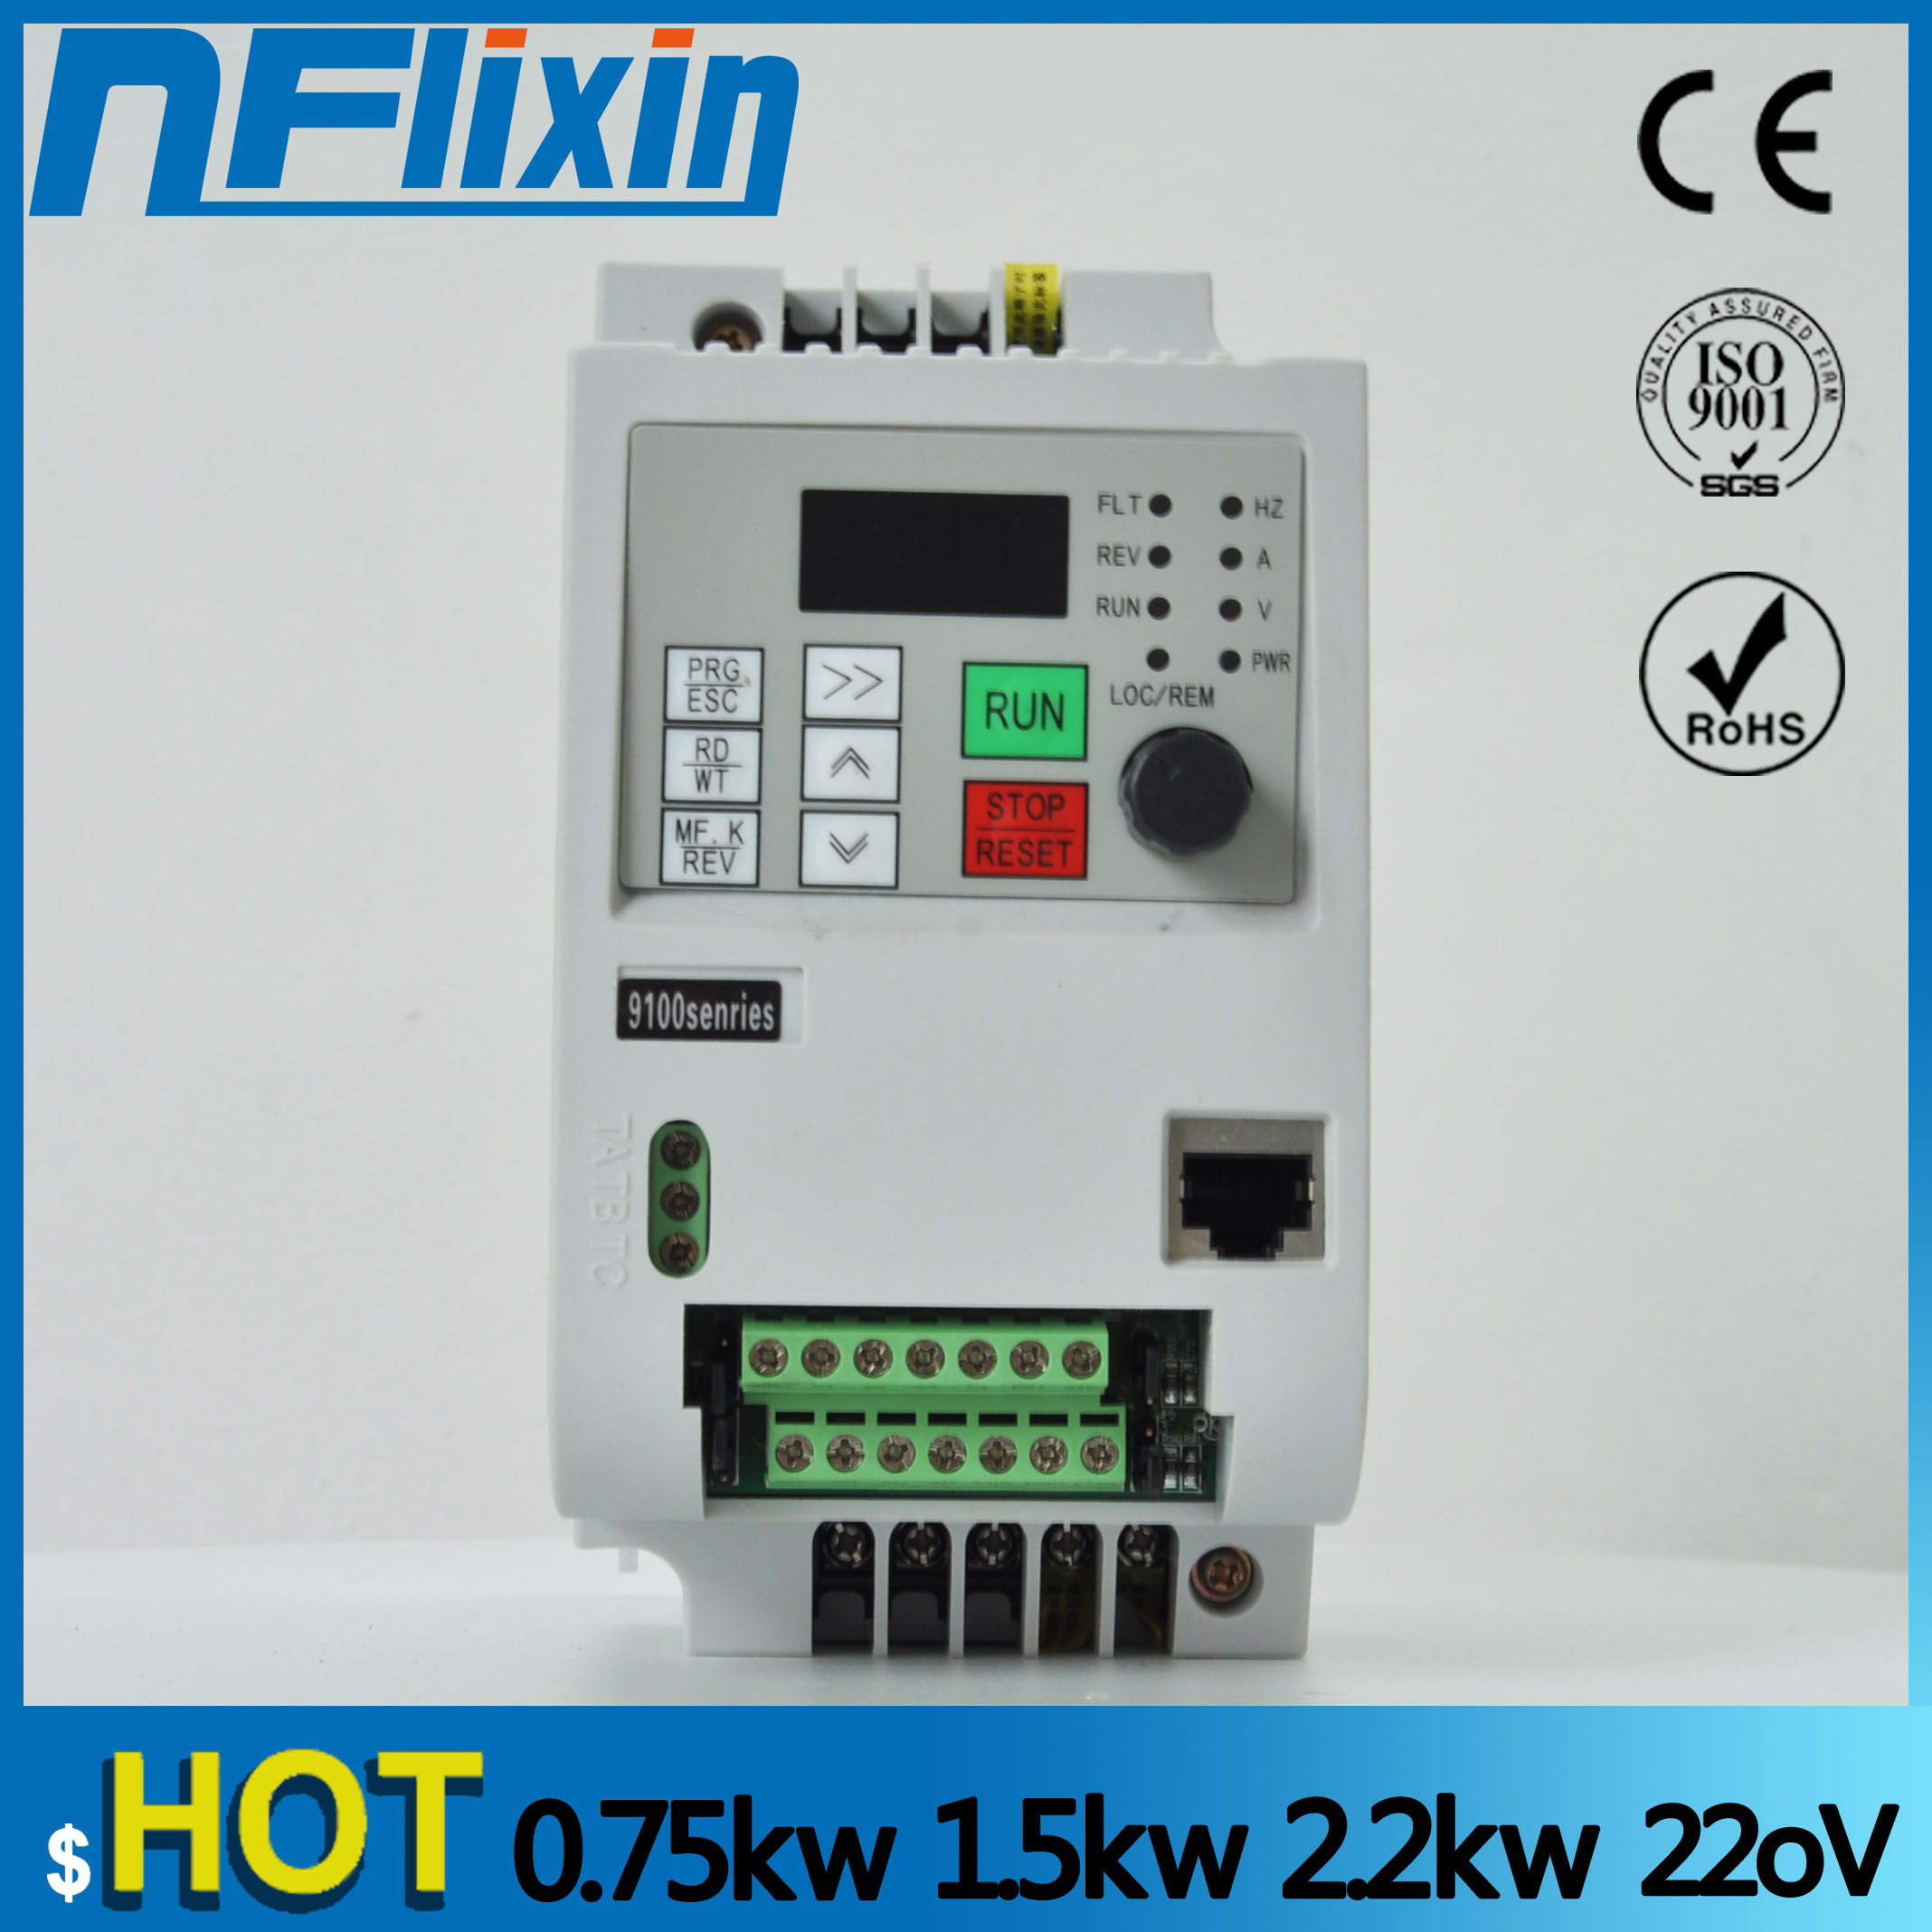 220V 1.5KW 2.2KW Single Phase input and 3 Phase Output Frequency Converter / Adjustable Speed Drive / Frequency Inverter / VFD220V 1.5KW 2.2KW Single Phase input and 3 Phase Output Frequency Converter / Adjustable Speed Drive / Frequency Inverter / VFD